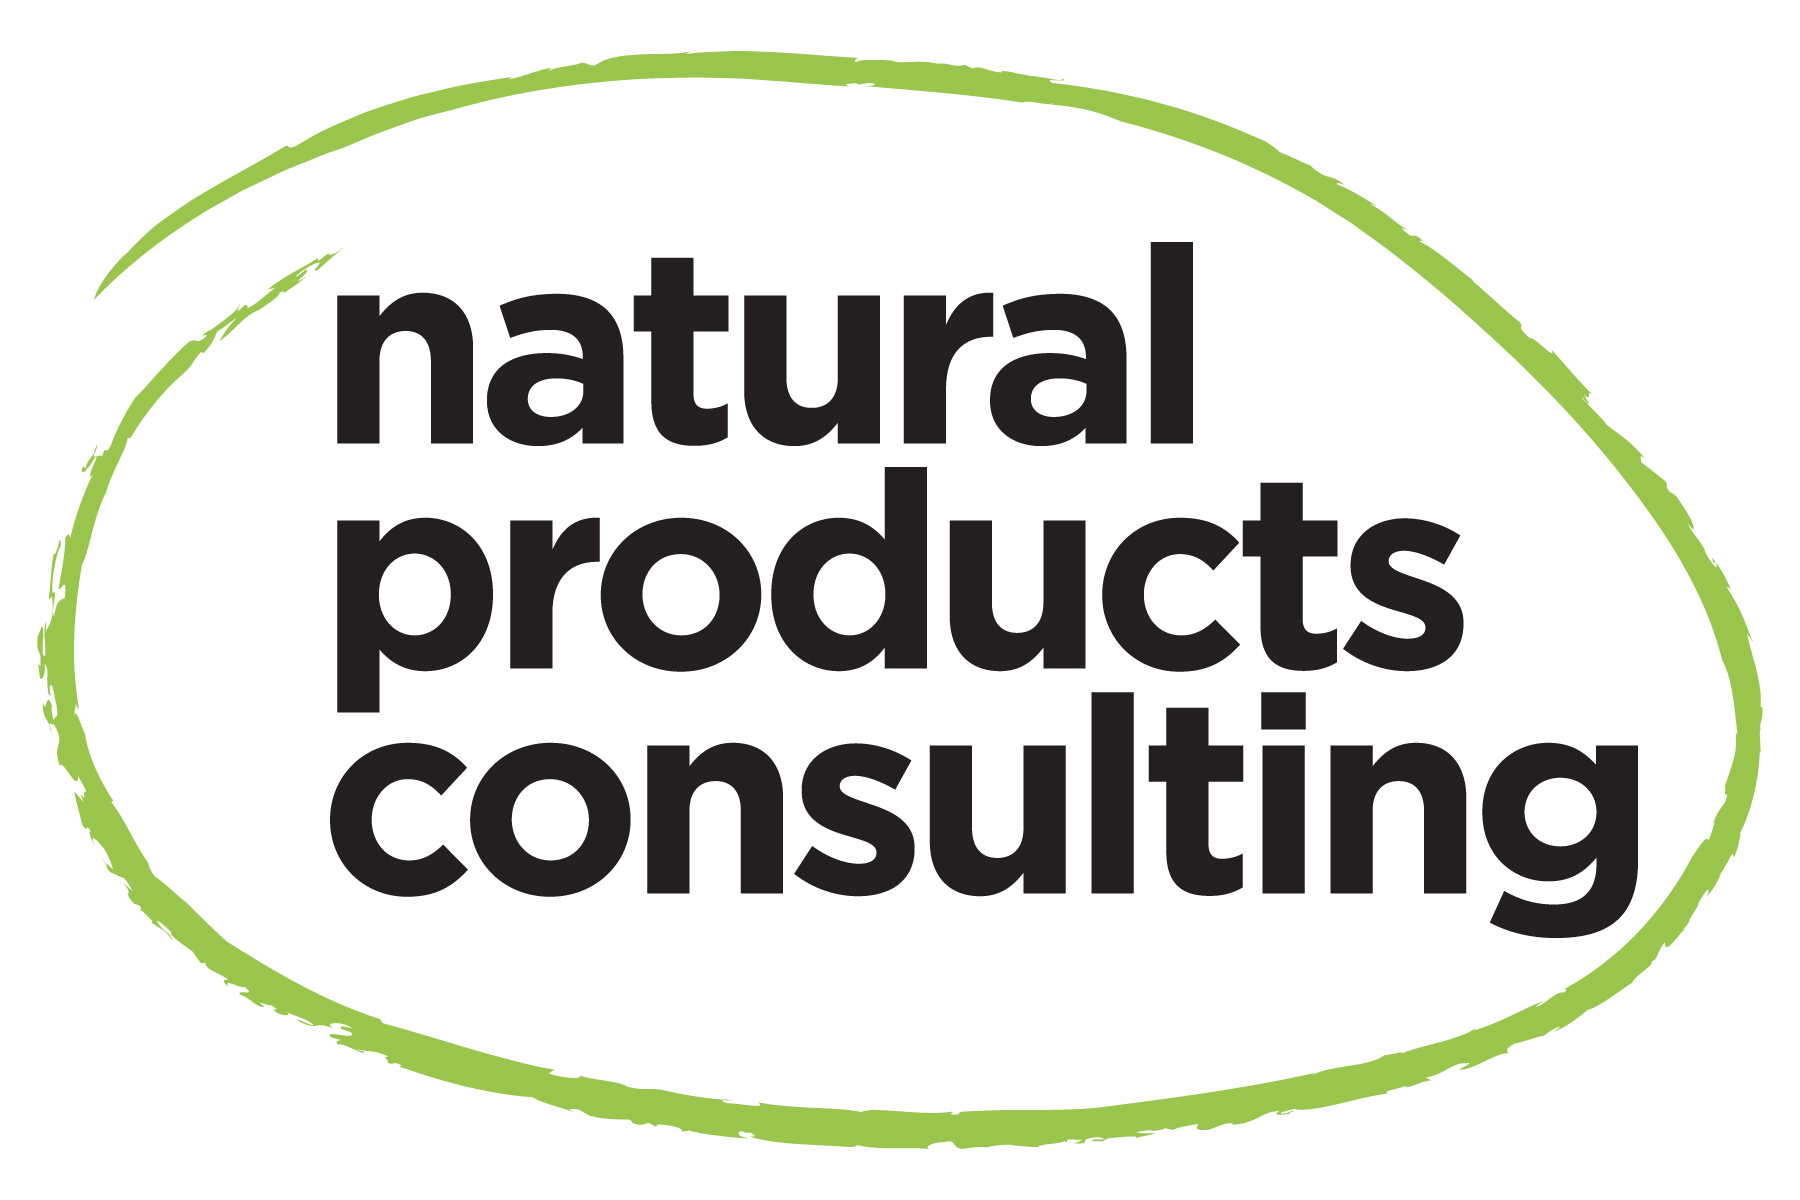 Natural Products Consulting